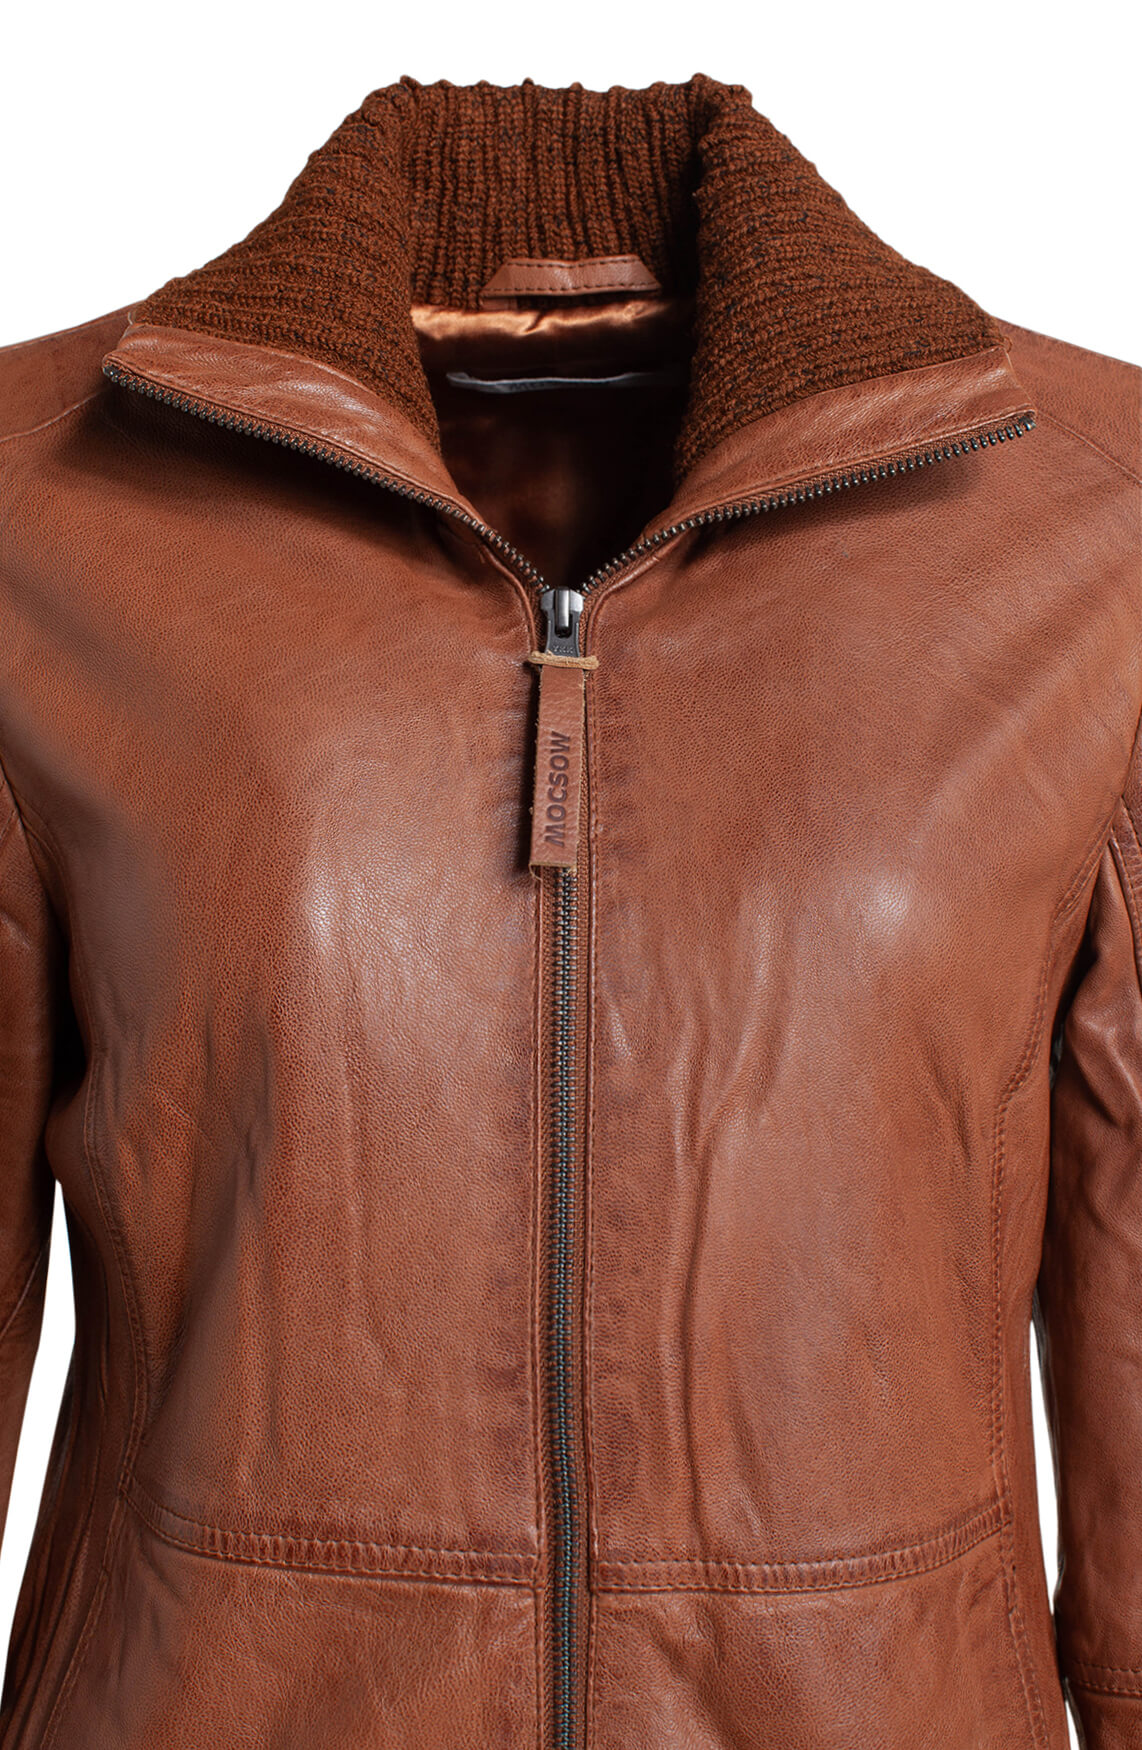 Moscow Dames Noria leather jacket Bruin